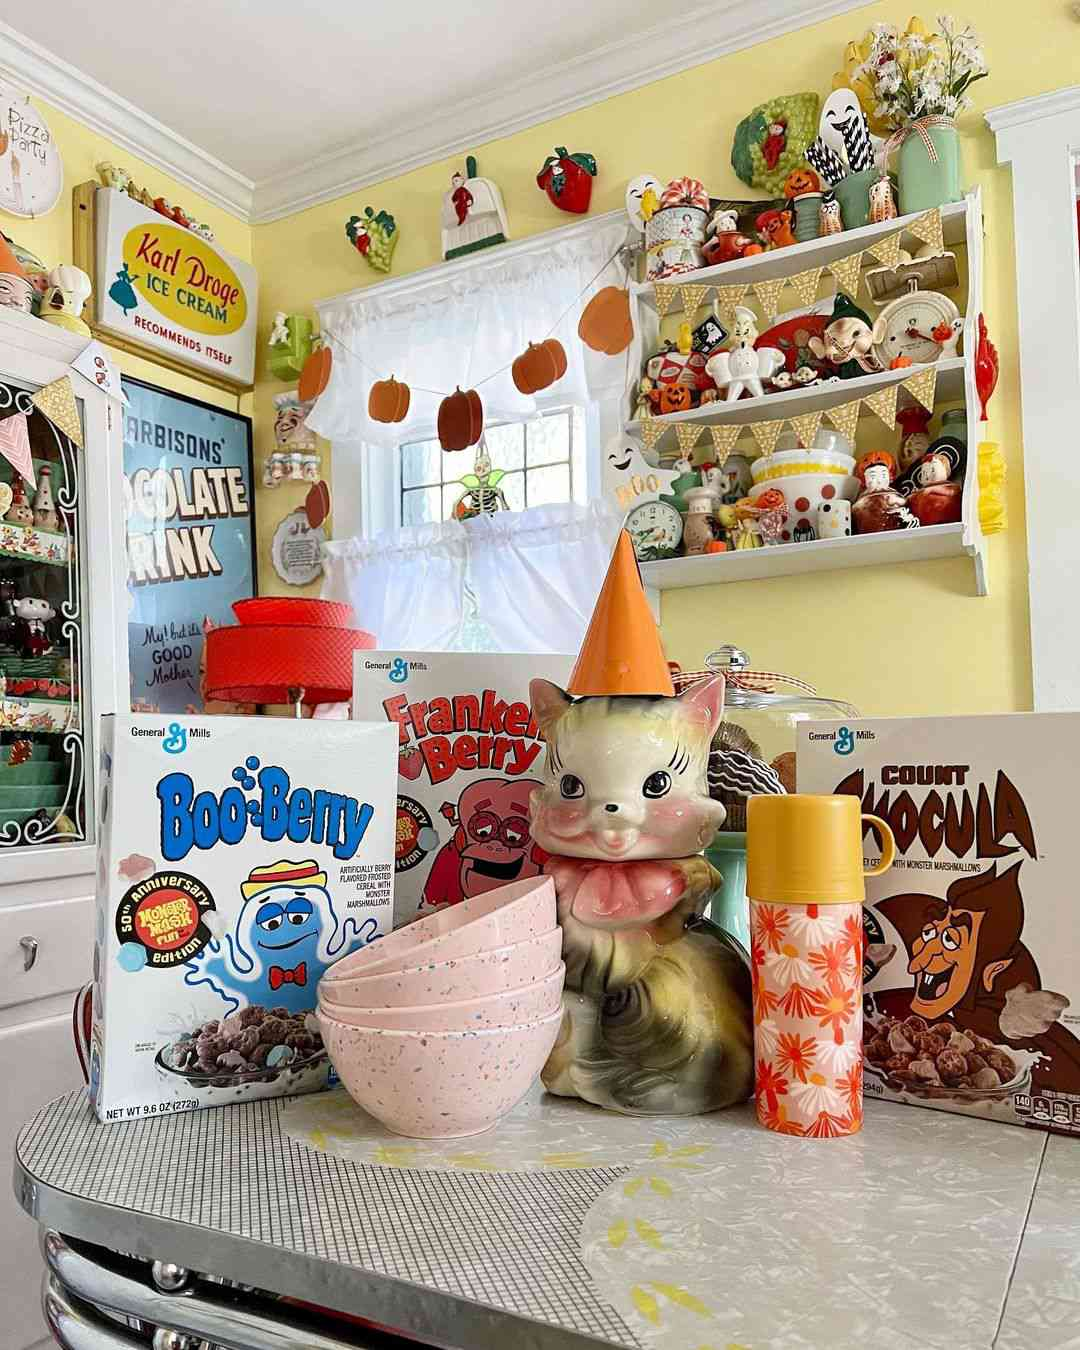 Retro decor with cereal boxes.